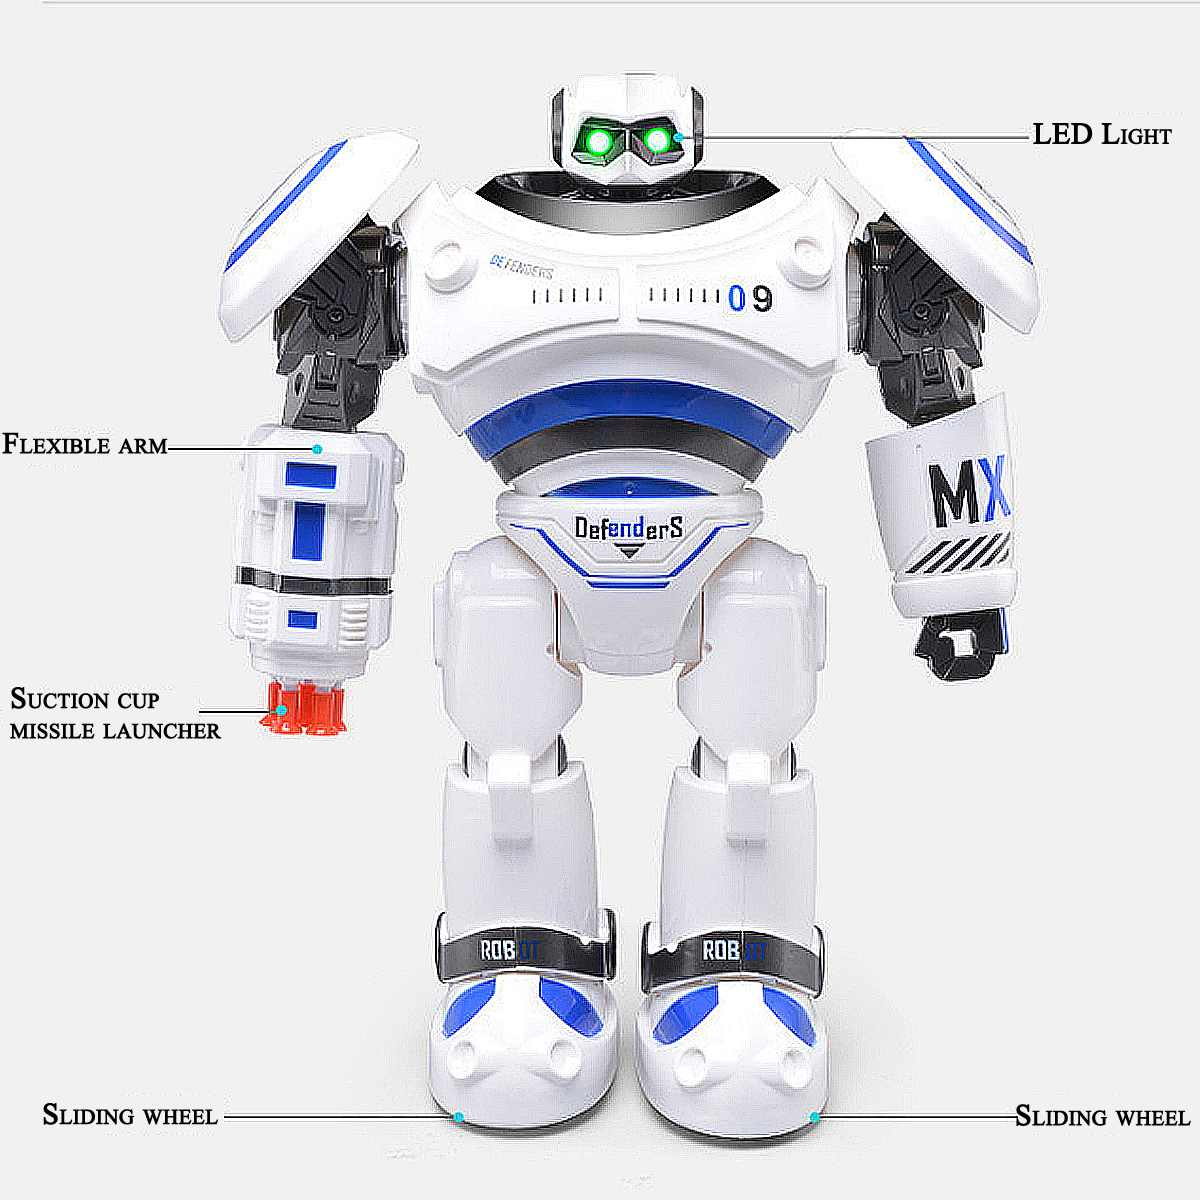 AD Polices Files Programmable Combat Robot with Remote Control for Kids 4